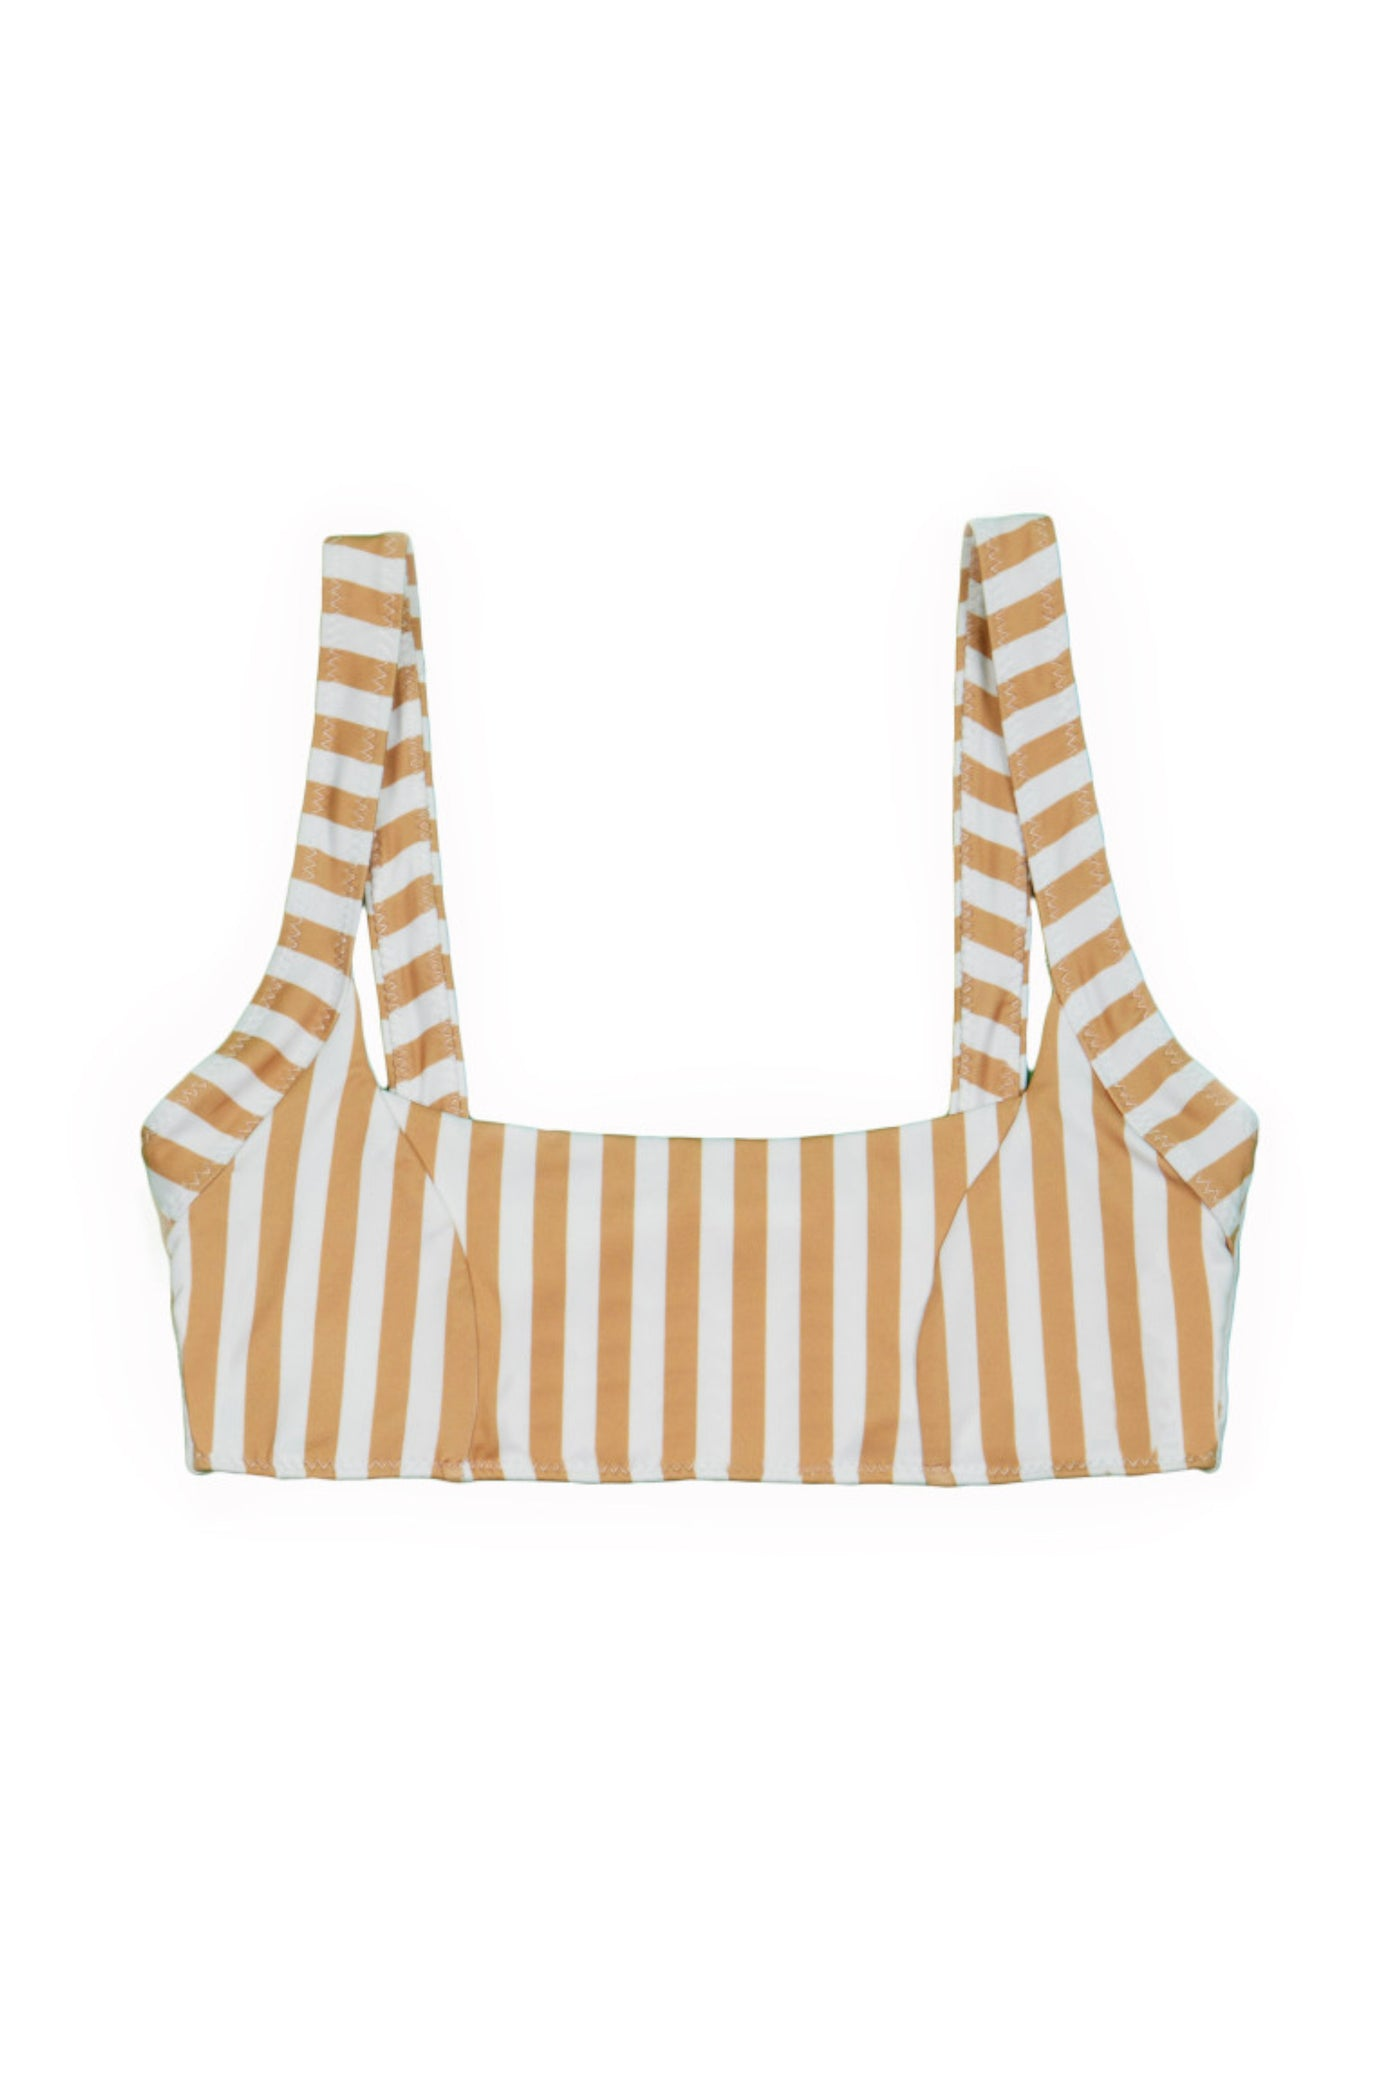 The Divine Top (Tan/White Stripe)